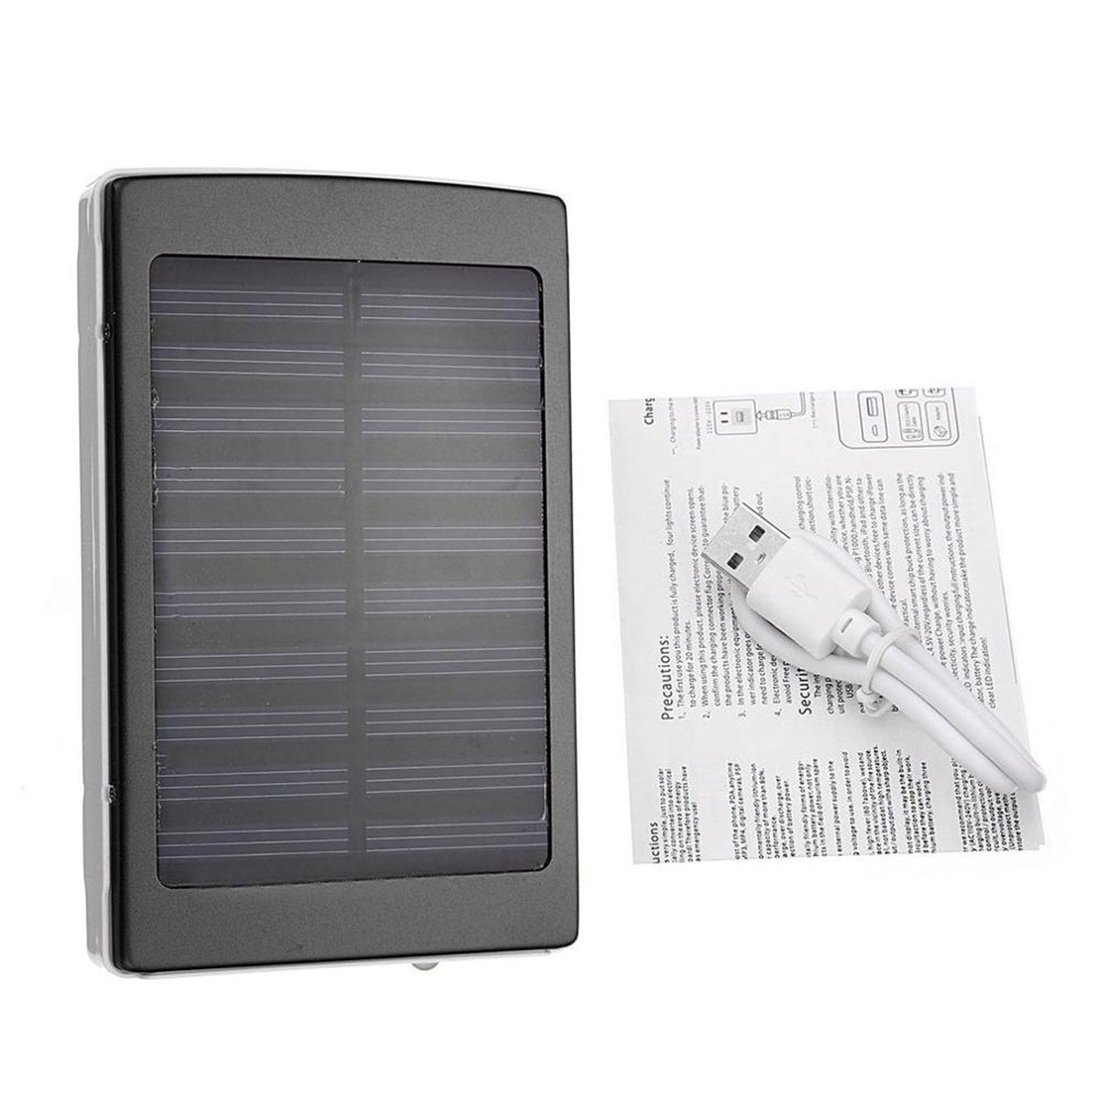 PINCHU Portable Size 50000Mah Large Capacity Solar Panel Power Bank Outdoor External Battery Charger,Black